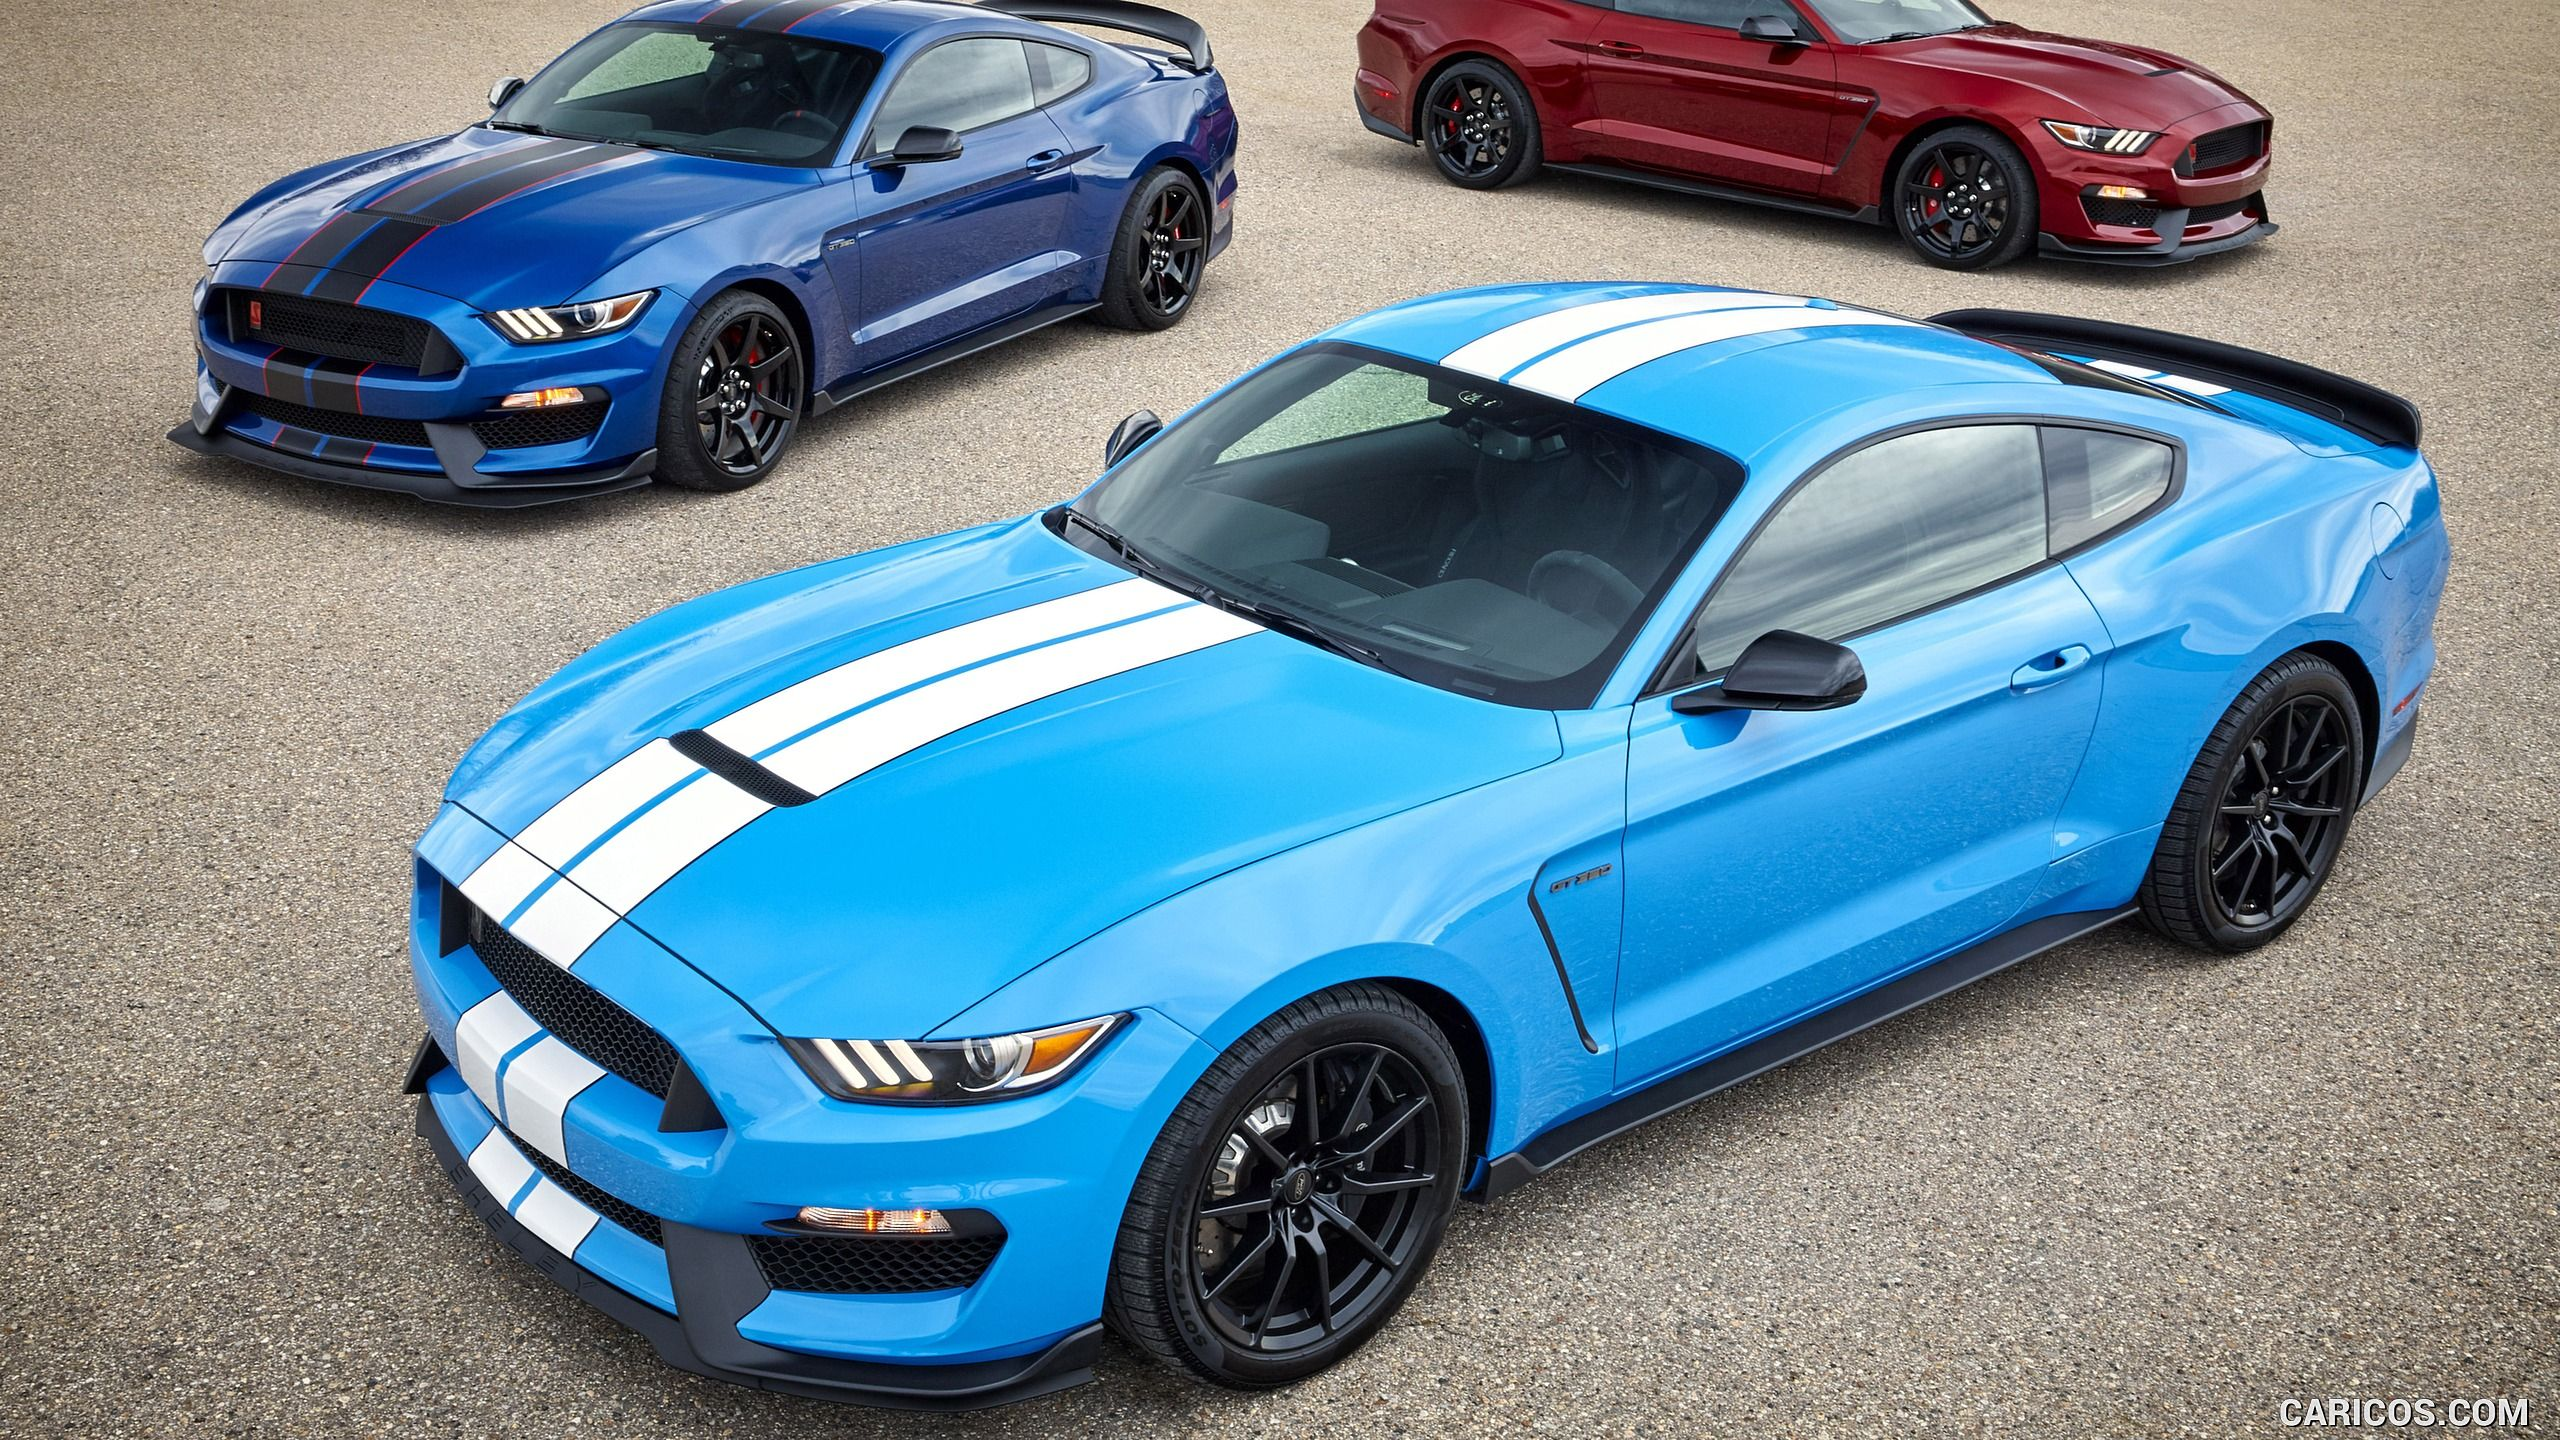 2017 Ford Mustang Shelby Gt350 And Gt350r Wallpaper With Images